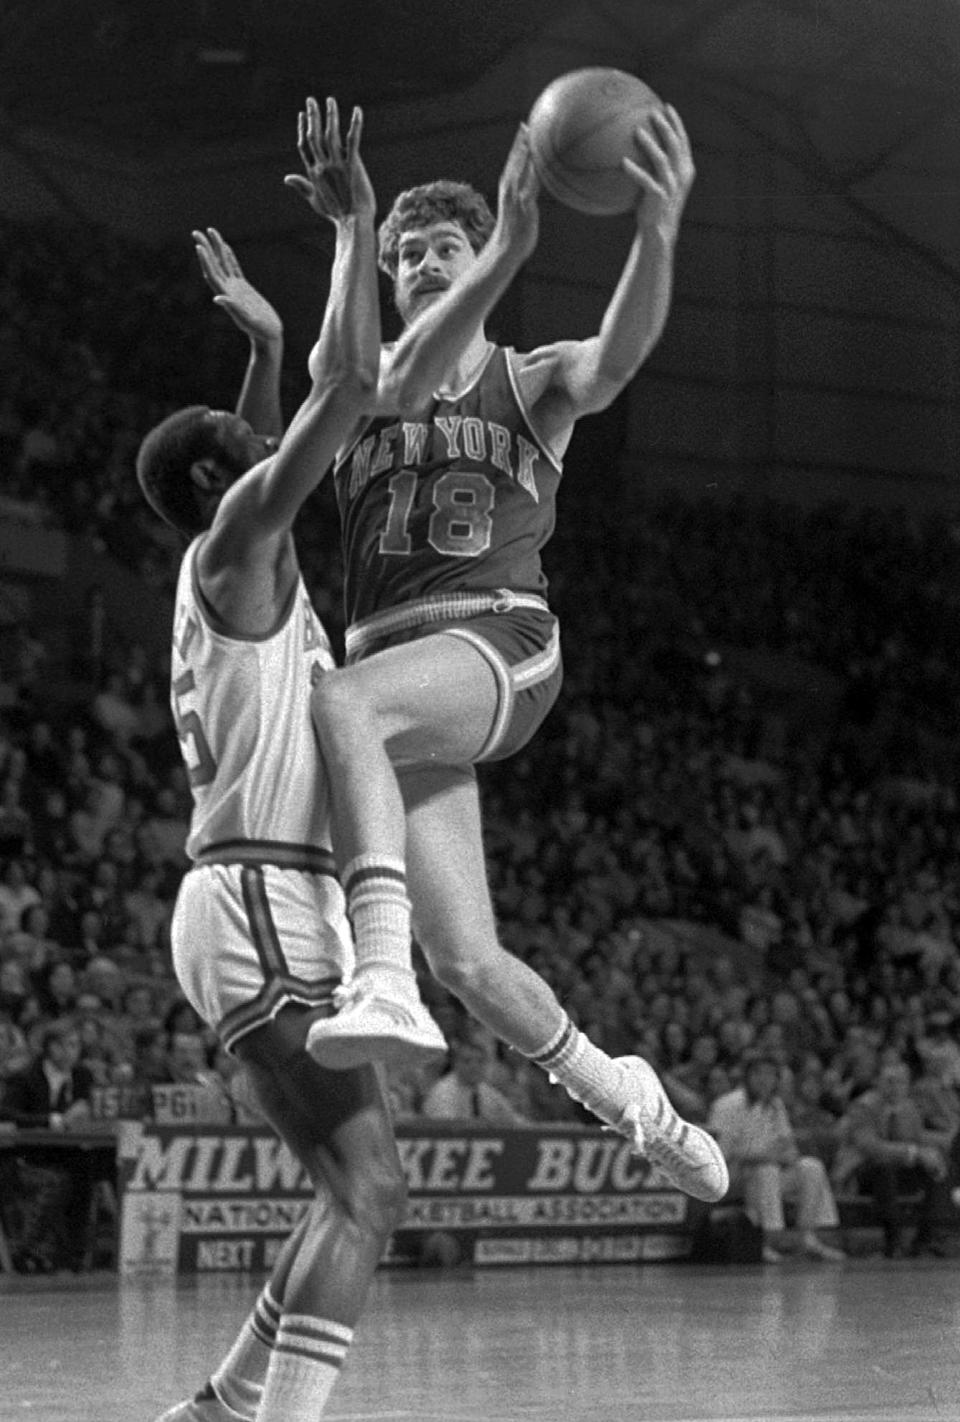 """FILE - In this Dec. 29, 1974 file photo, New York Knicks' Phil Jackson (18) goes to the basket against Milwaukee Bucks' Cornell Warner during an NBA basketball game in Milwaukee. Carmelo Anthony says he has heard that 11-time NBA champion coach Phil Jackson will be """"coming on board"""" in a leadership capacity with the New York Knicks, though cautioned that nothing is yet official. Anthony made the comments Wednesday, March 12, 2014, to reporters in Boston, where the Knicks are playing the Celtics. (AP Photo/File)"""